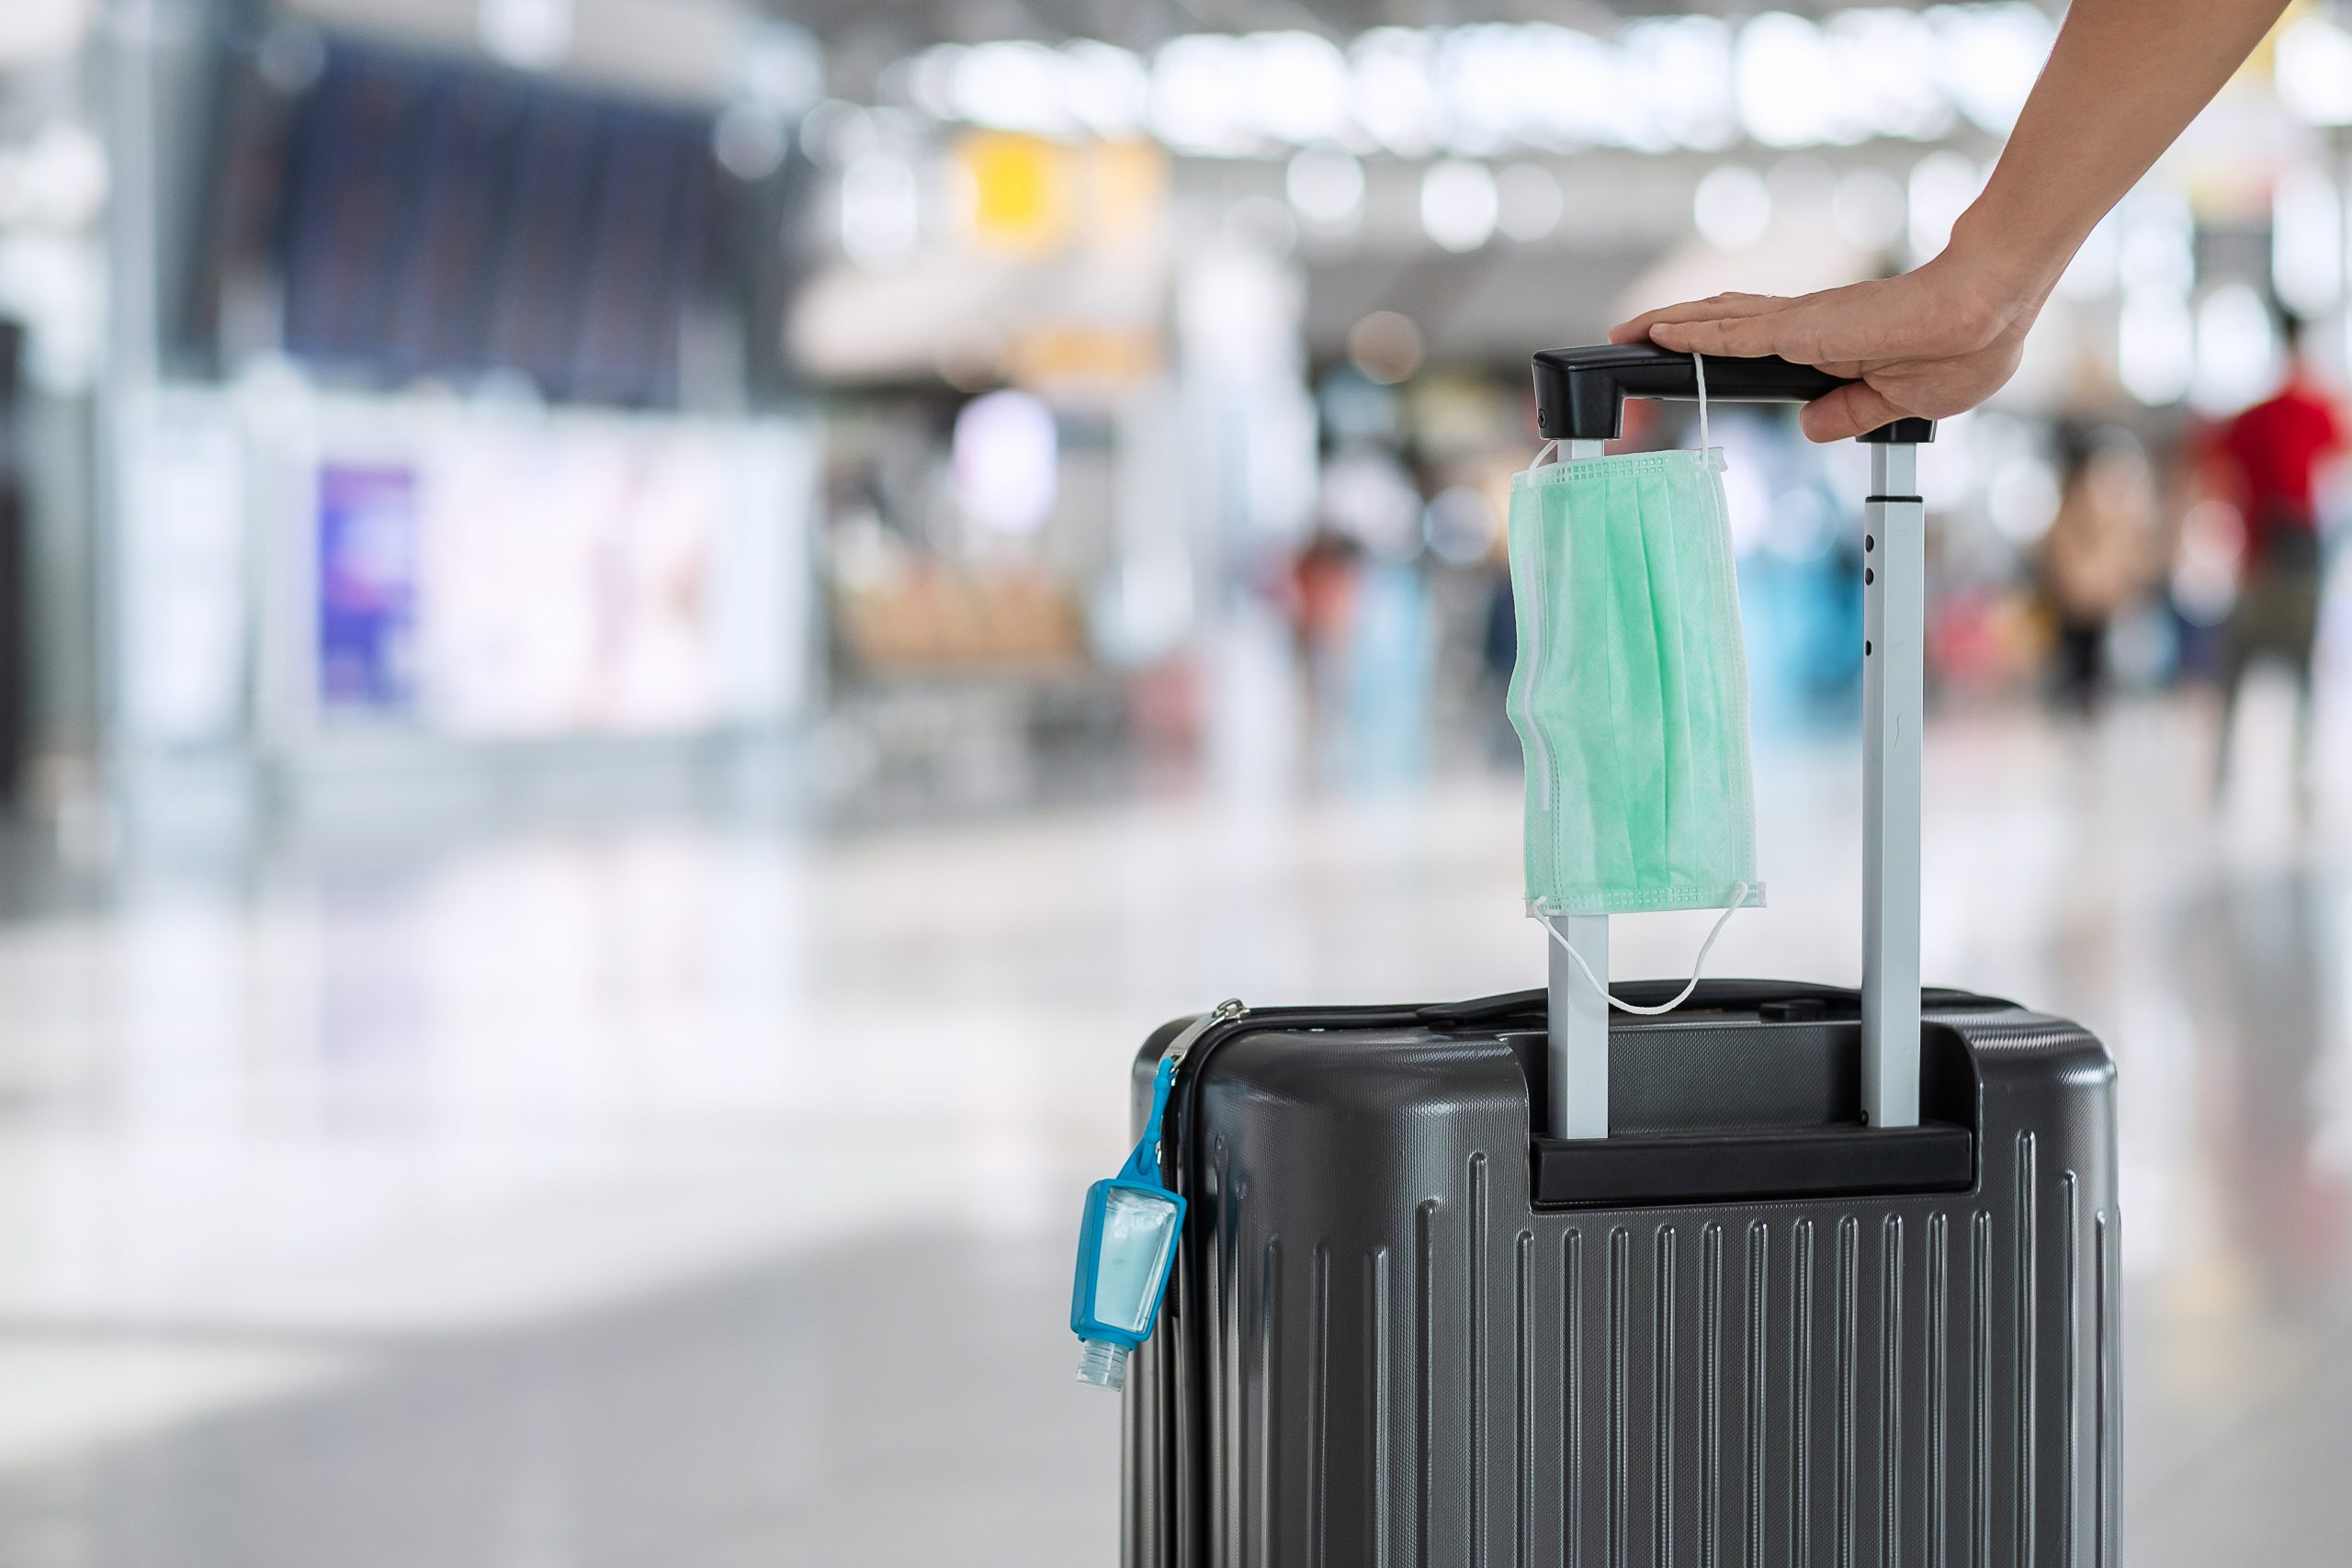 suitcase with medical mask showingresumption of travel during COVID restrictions